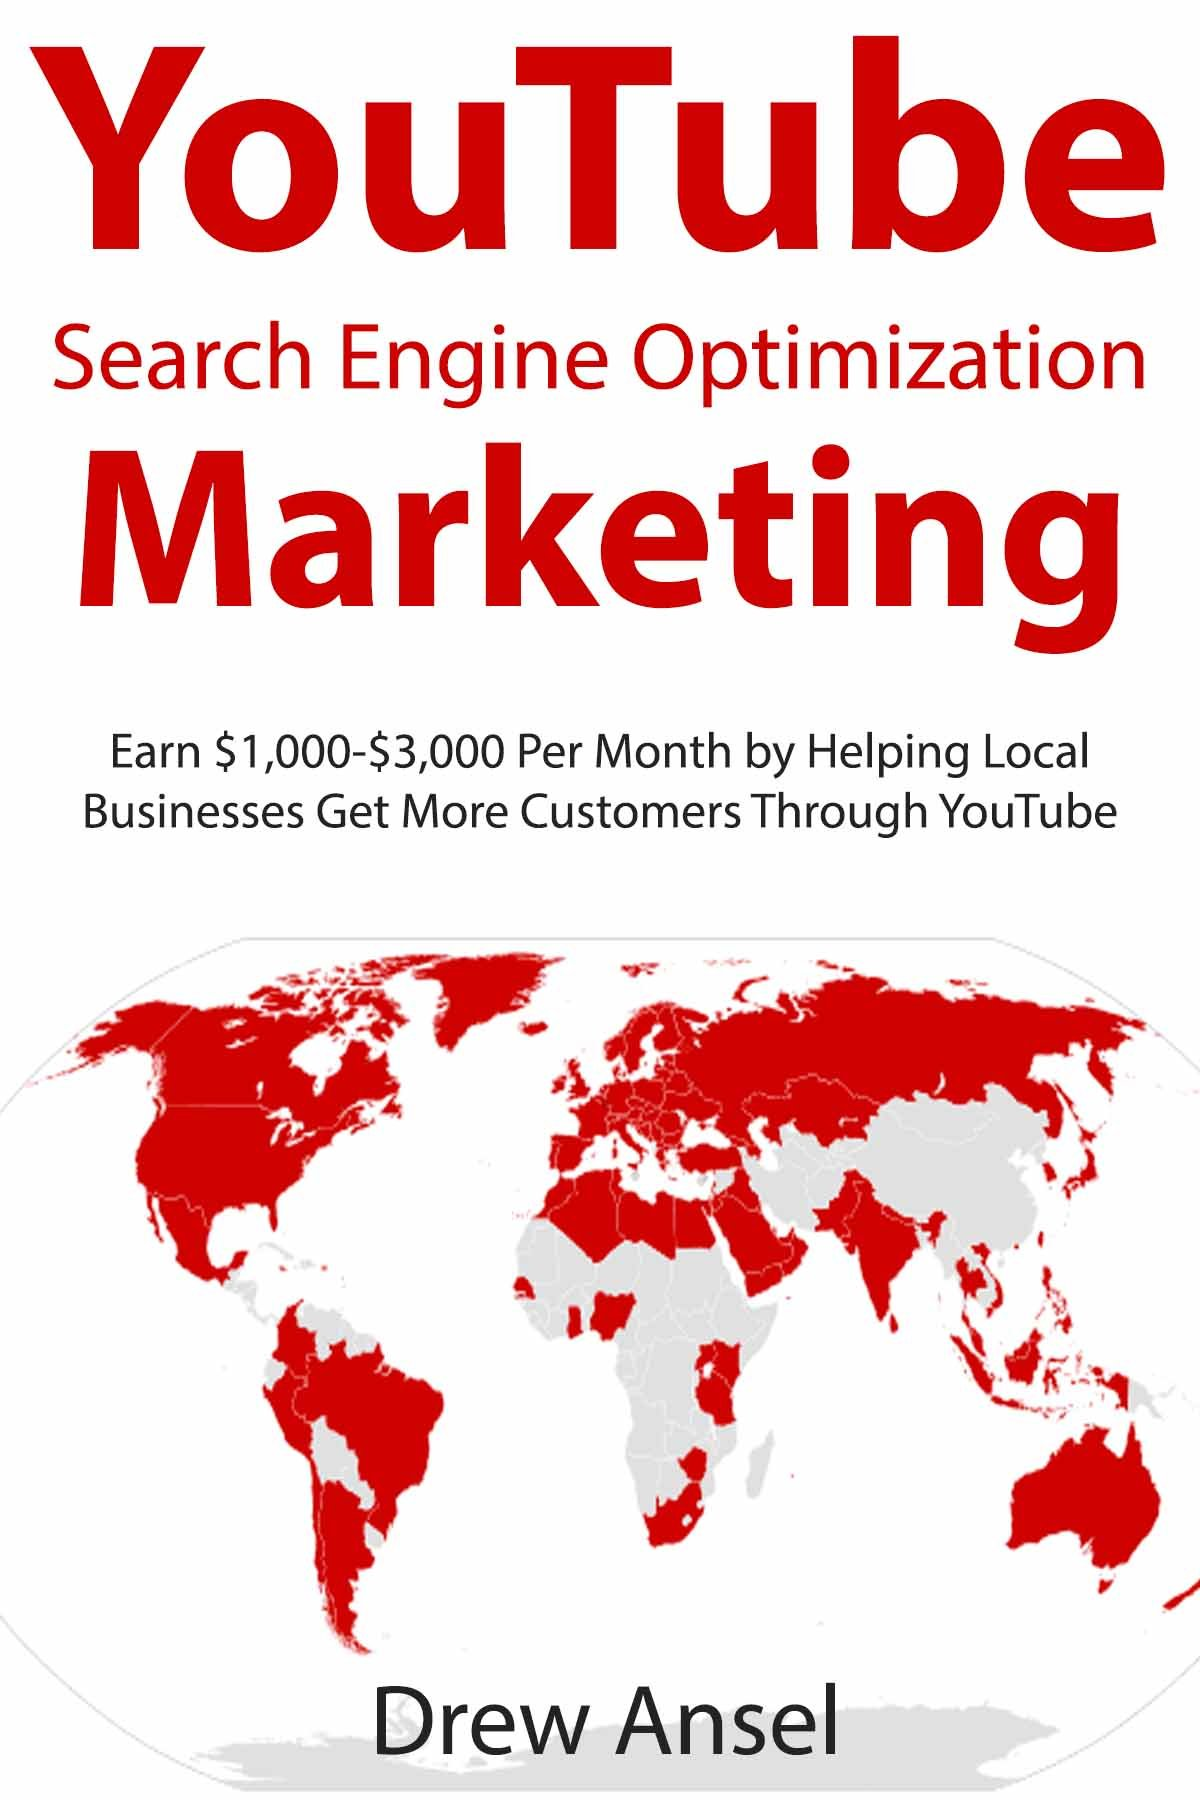 YouTube SEO Marketing: Earn $1,000-$3,000 Per Month by Helping Local Businesses Get More Customers Through YouTube